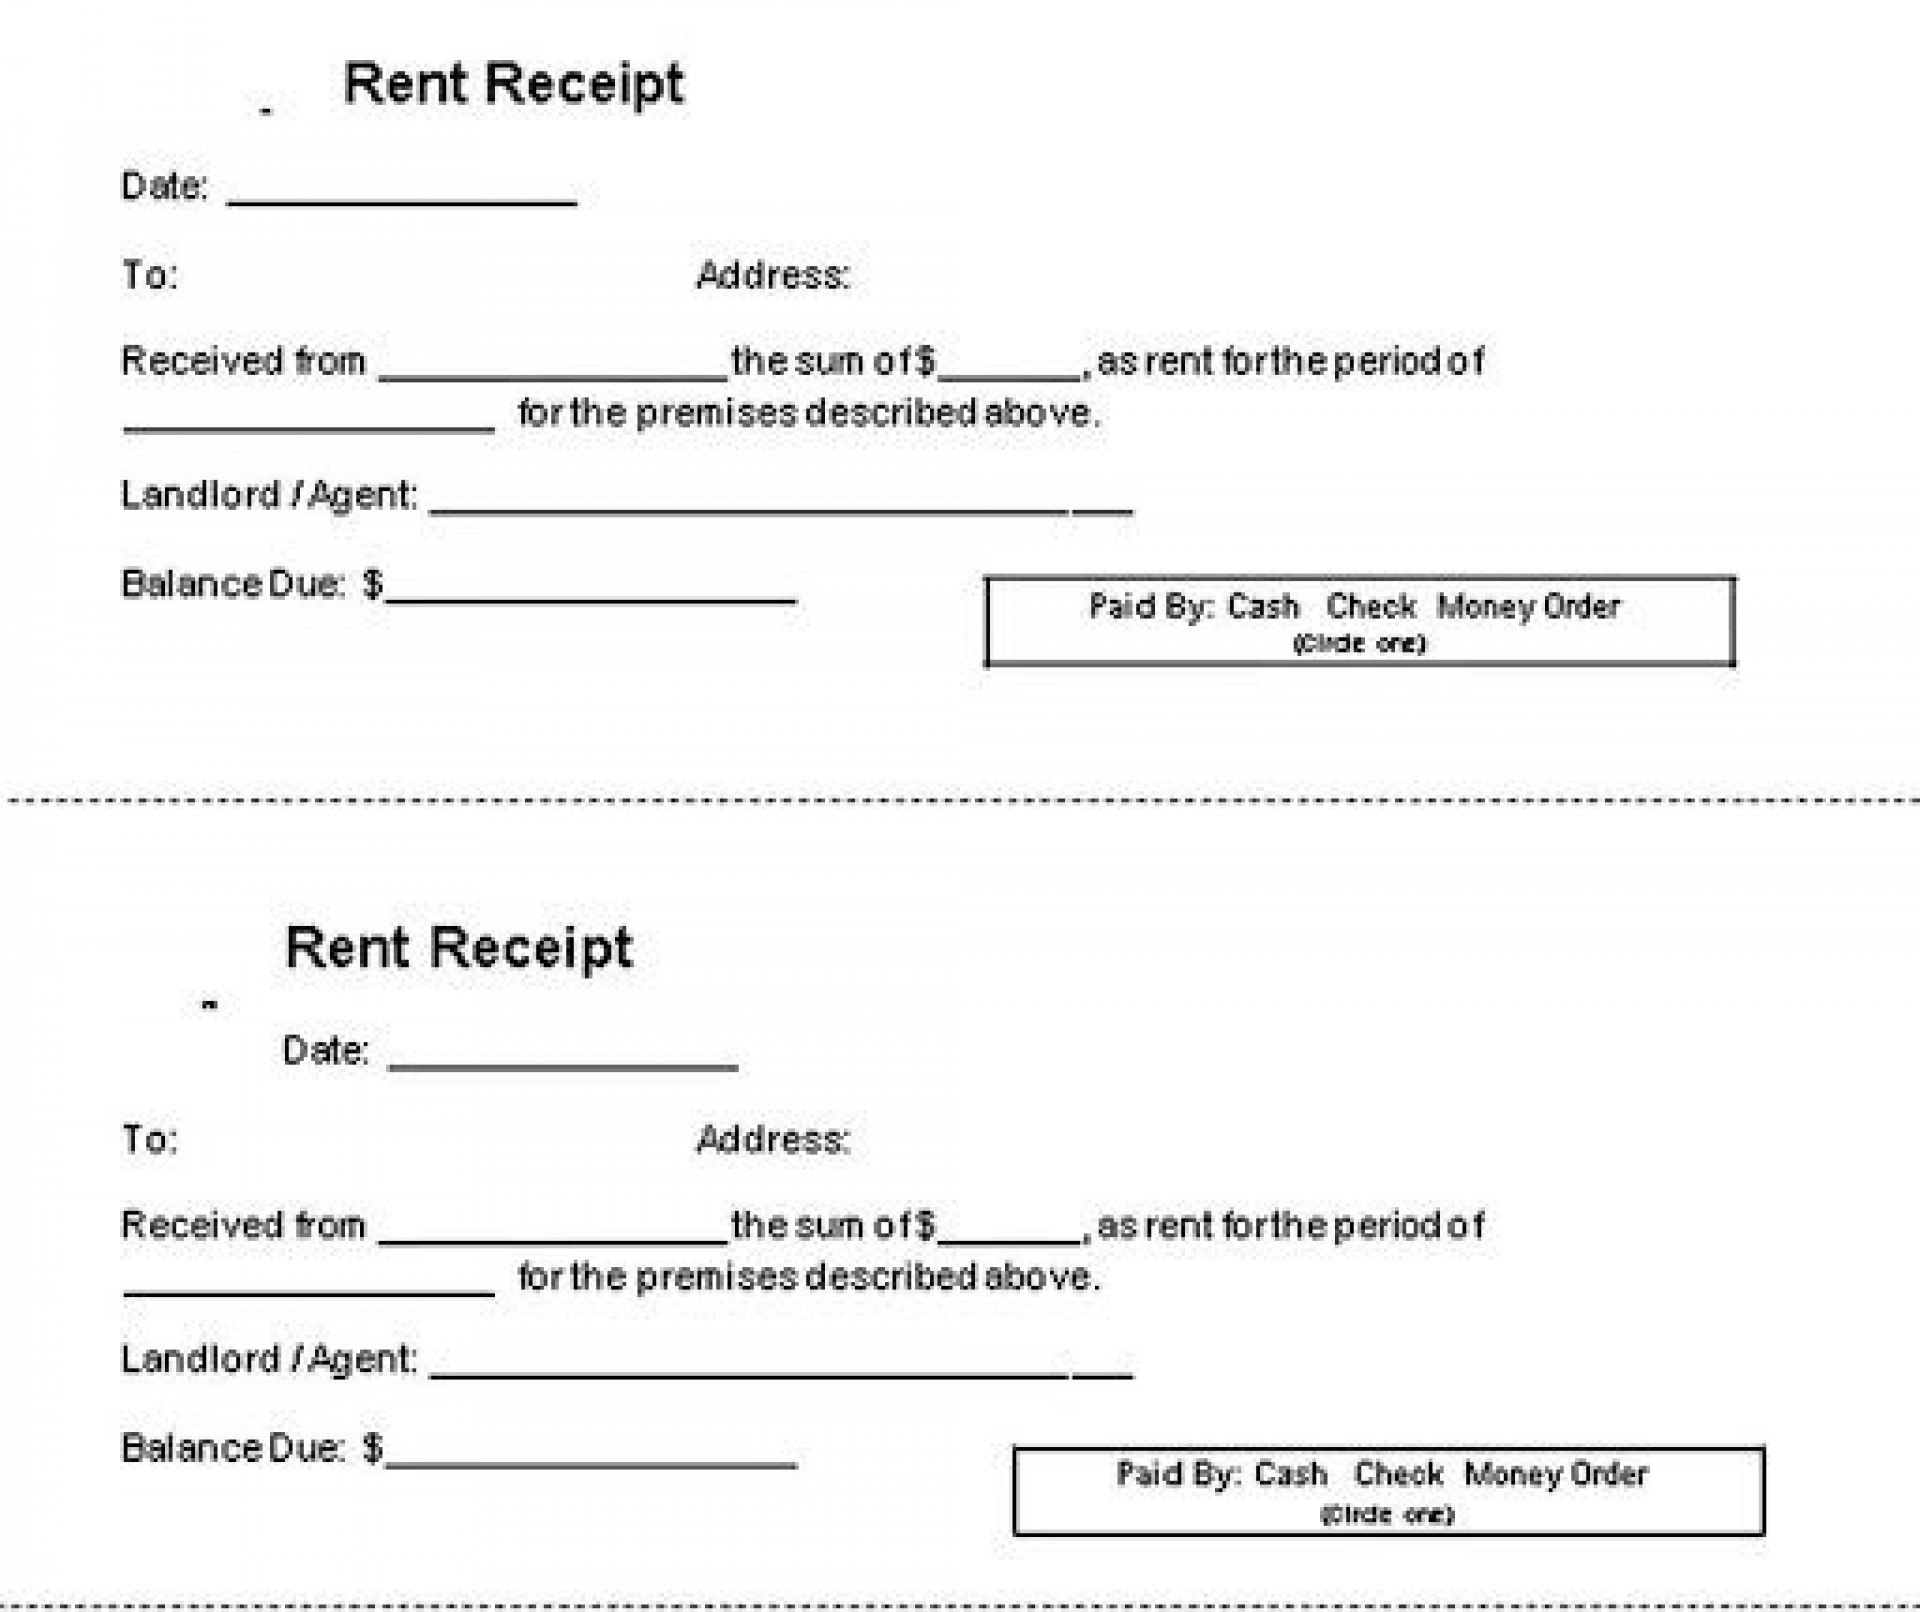 010 Shocking Rent Receipt Sample Doc High Resolution  Format Free Download India Word1920